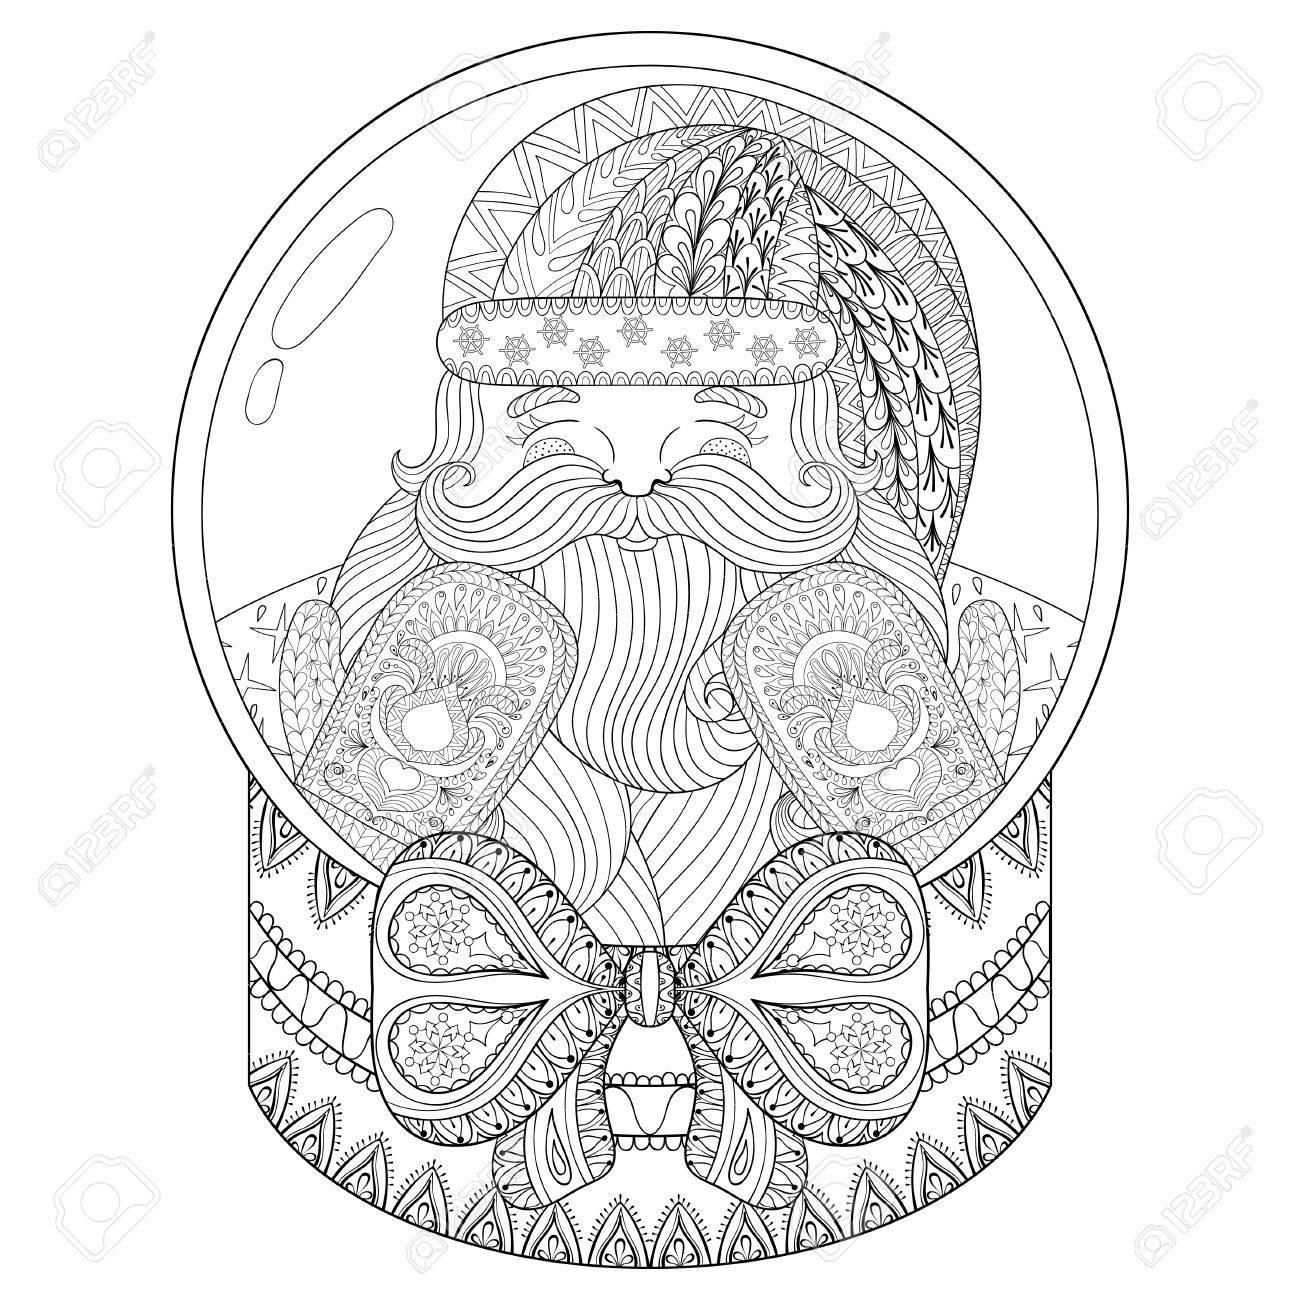 Hand Drawn Snowglobe For Adult Coloring Book Pages Art Therapy Illustration New Year 2017 Posters And Greeting Cards